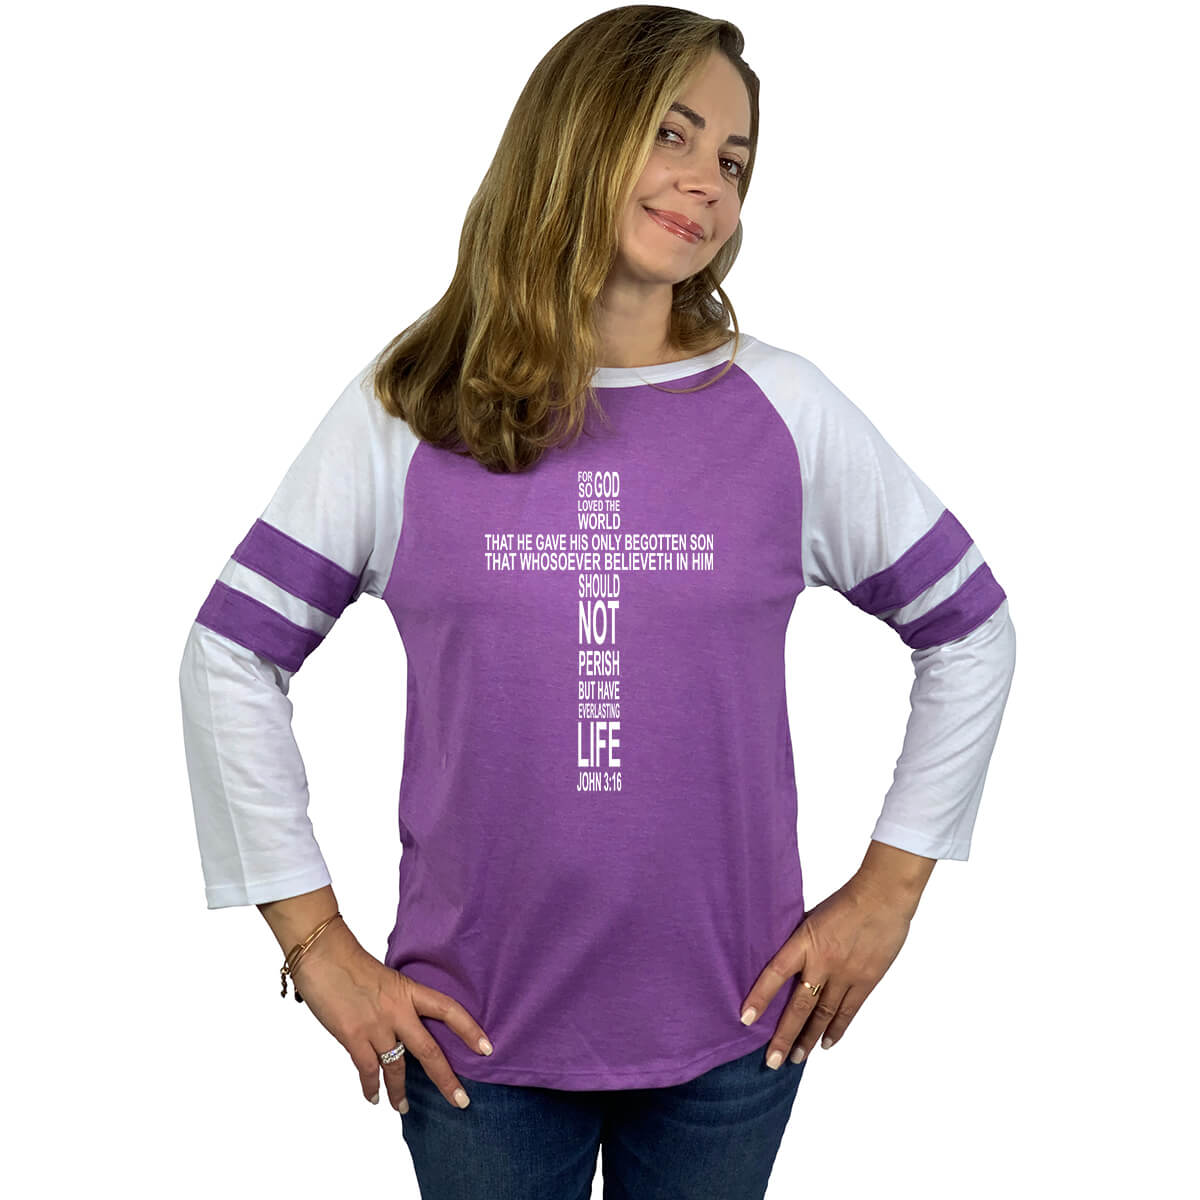 John 3 16 Christian Cross Women S Long Sleeve Baseball Jersey